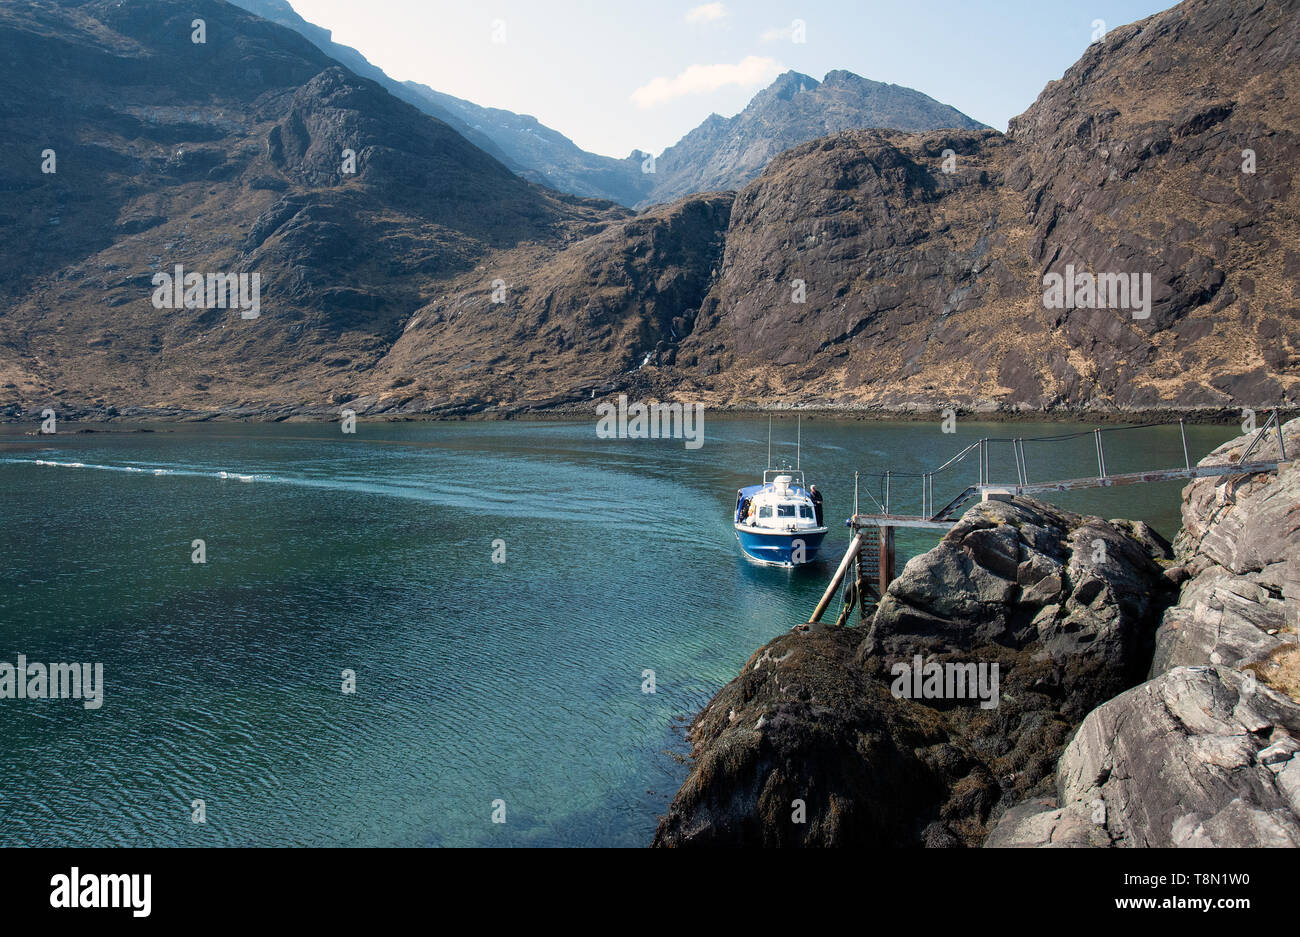 The Bella Jane passenger ferry disembarking hikers from Elgol to the remote Loch Coruisk on the Isle of Skye, in the Scottish Highlands. - Stock Image